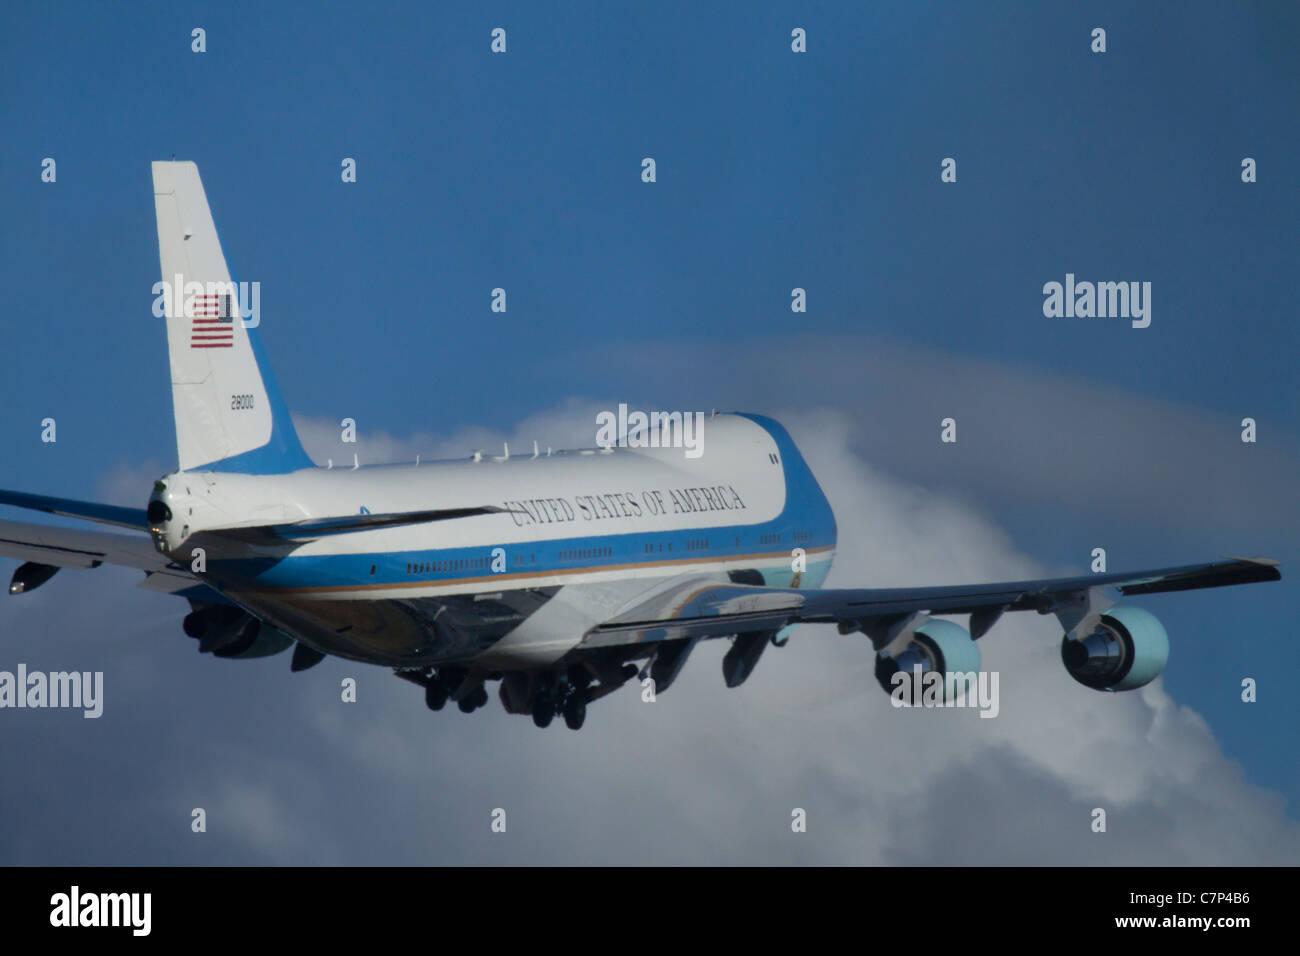 President Obama Departs from King County Airport/Boeing Field, Seattle, Washington on Air Force One, September 25, - Stock Image